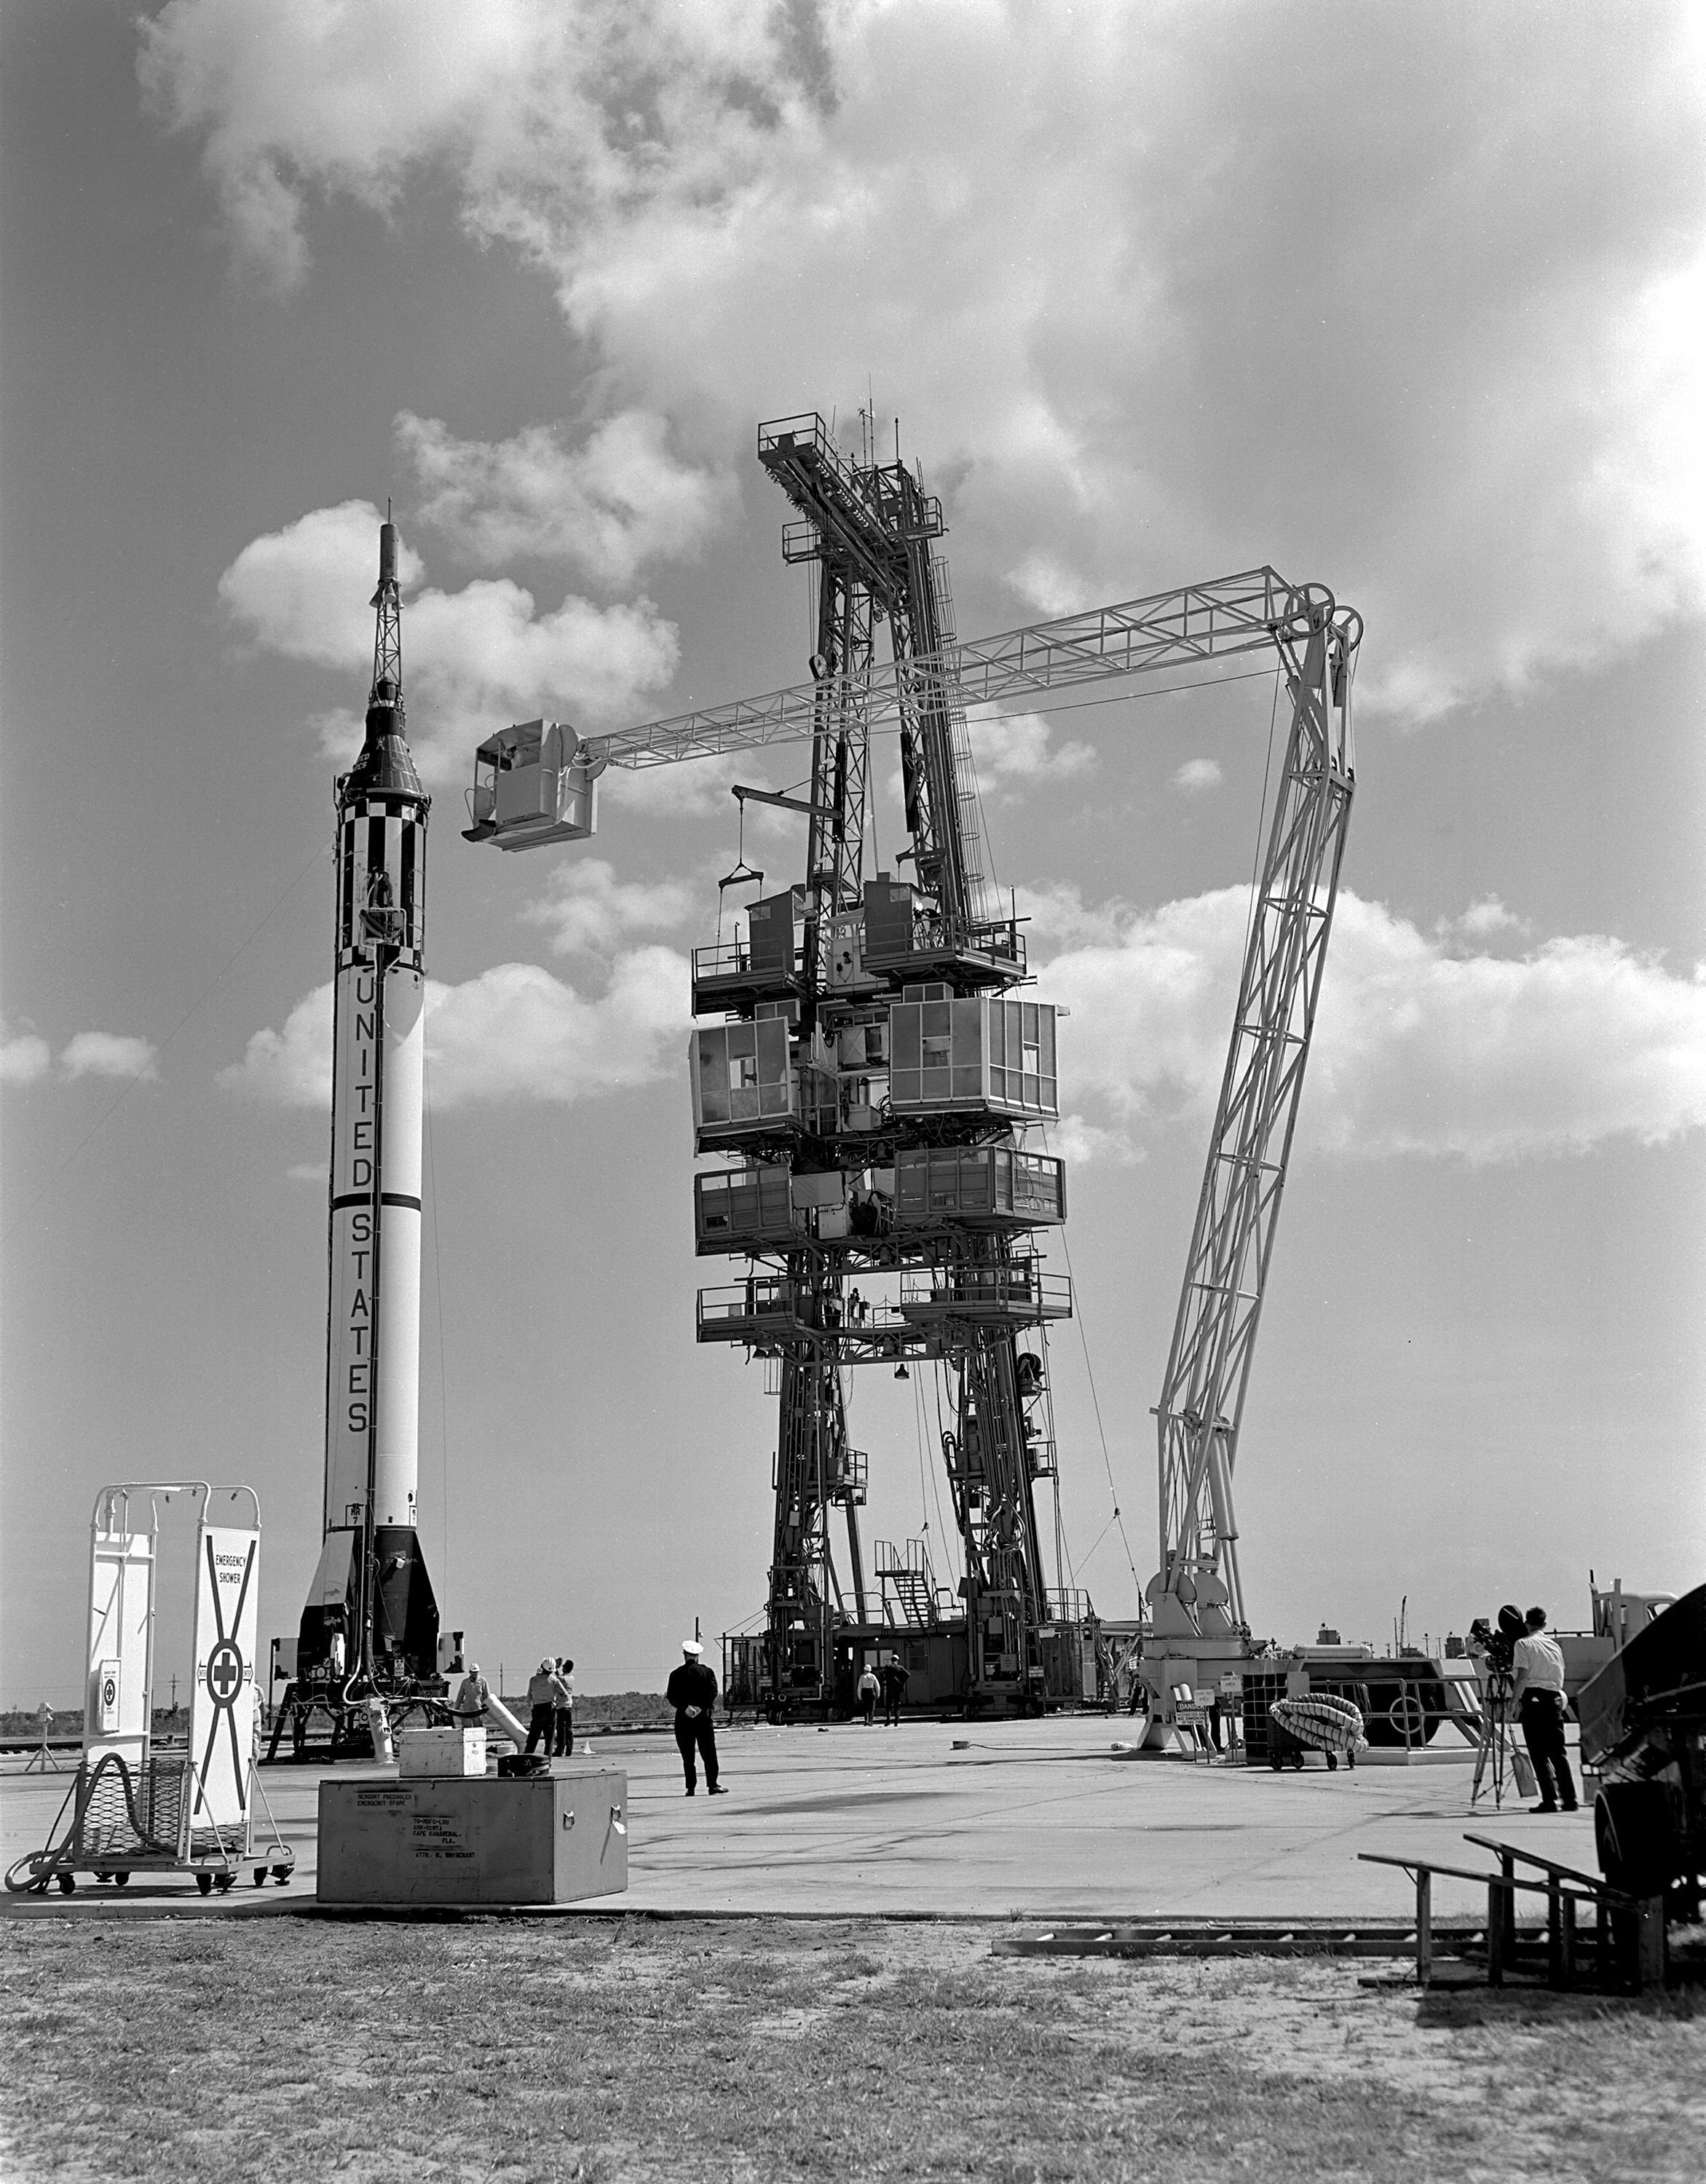 Mercury-Redstone MR-3/Freedom 7 - (05.05.1961) Mercury_Redstone_3_Prelaunch_Activities_-_GPN-2000-001006